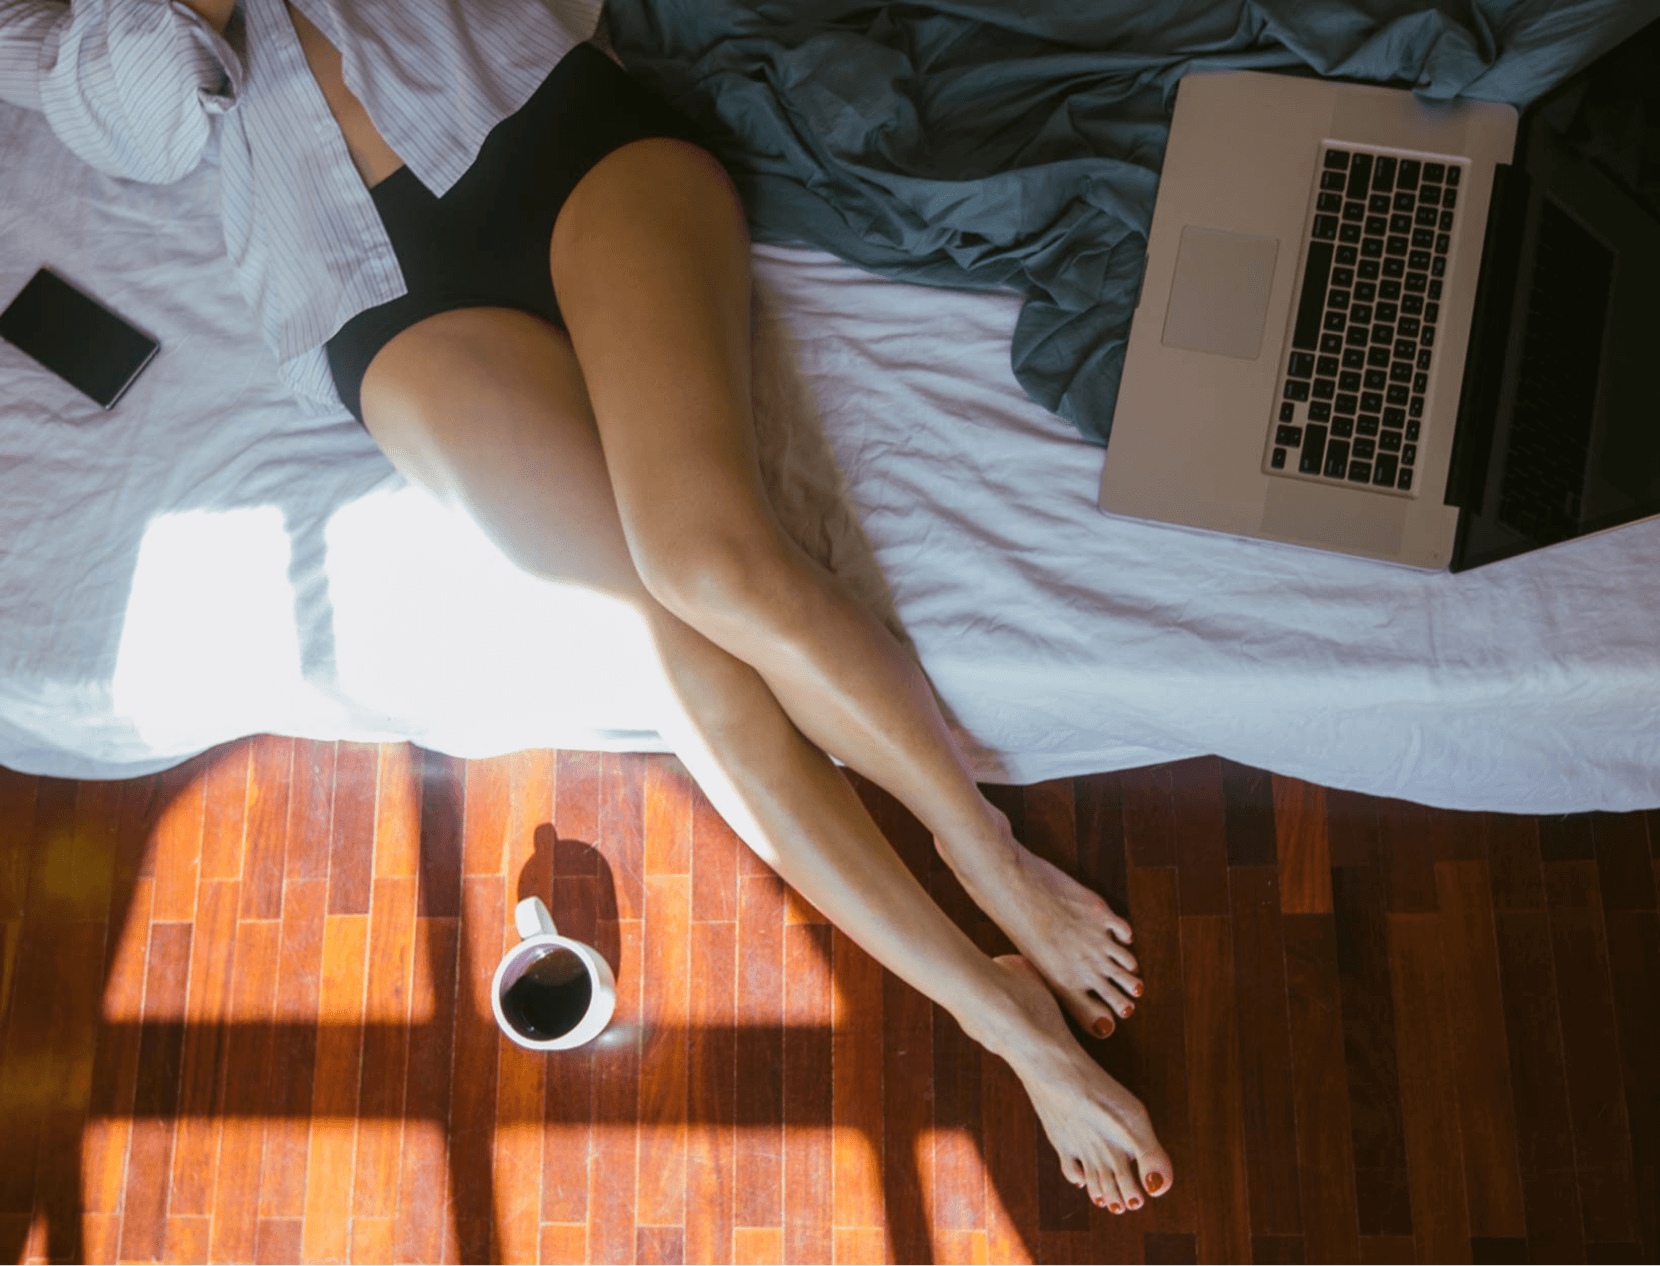 8 Ways to Feel Joy and Find Support While Social Distancing